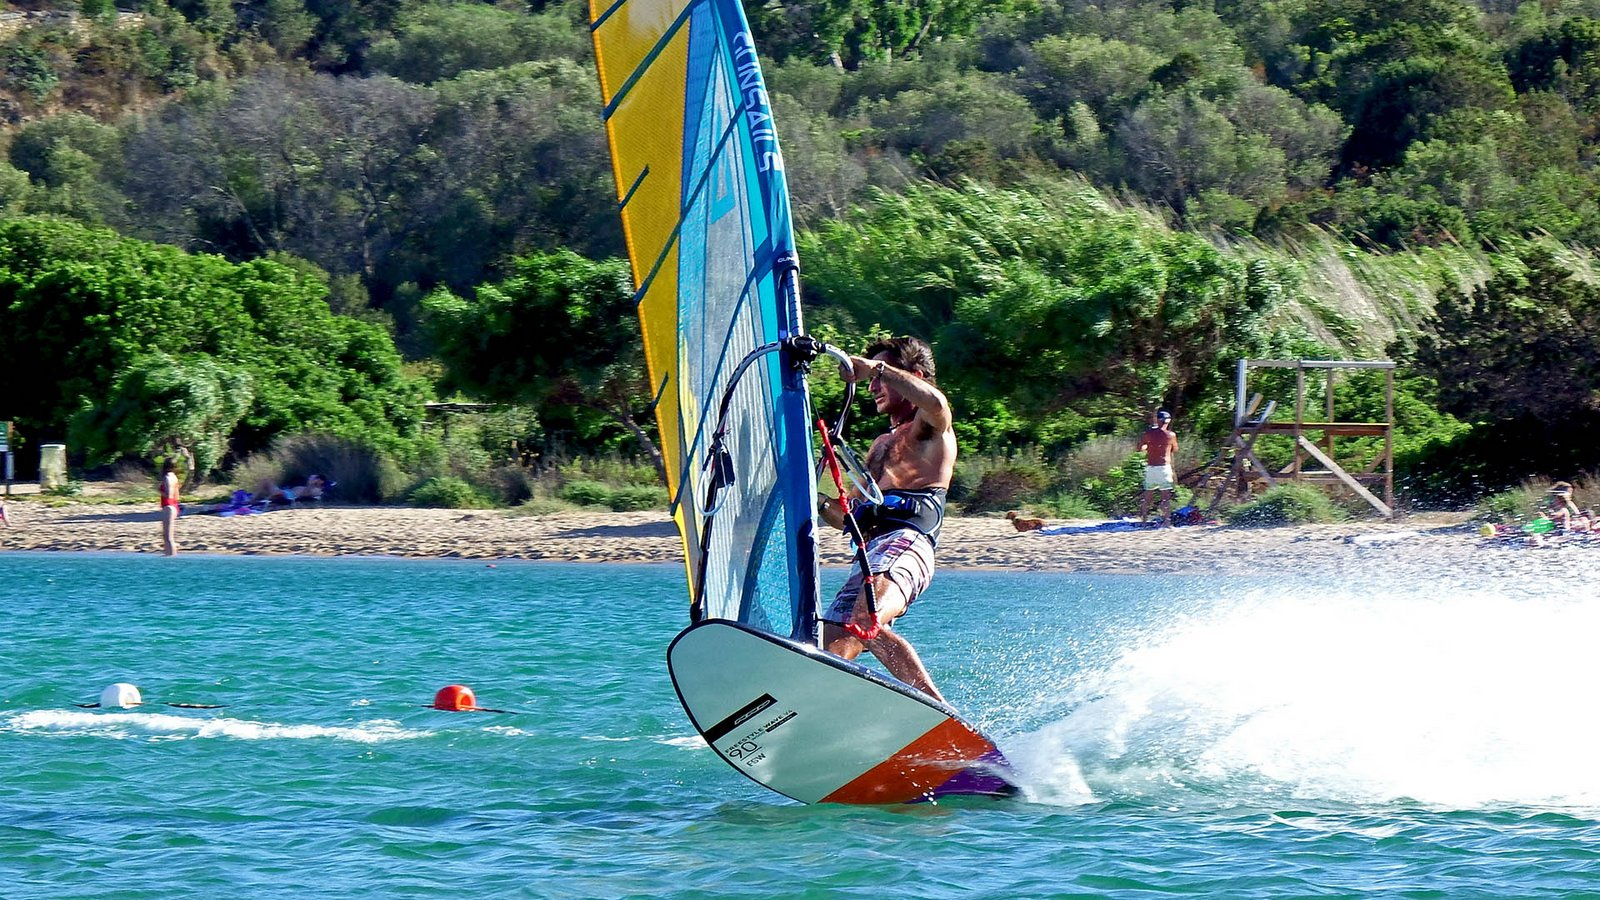 Crystal clear water and good steady wind : a windsurfer's paradise